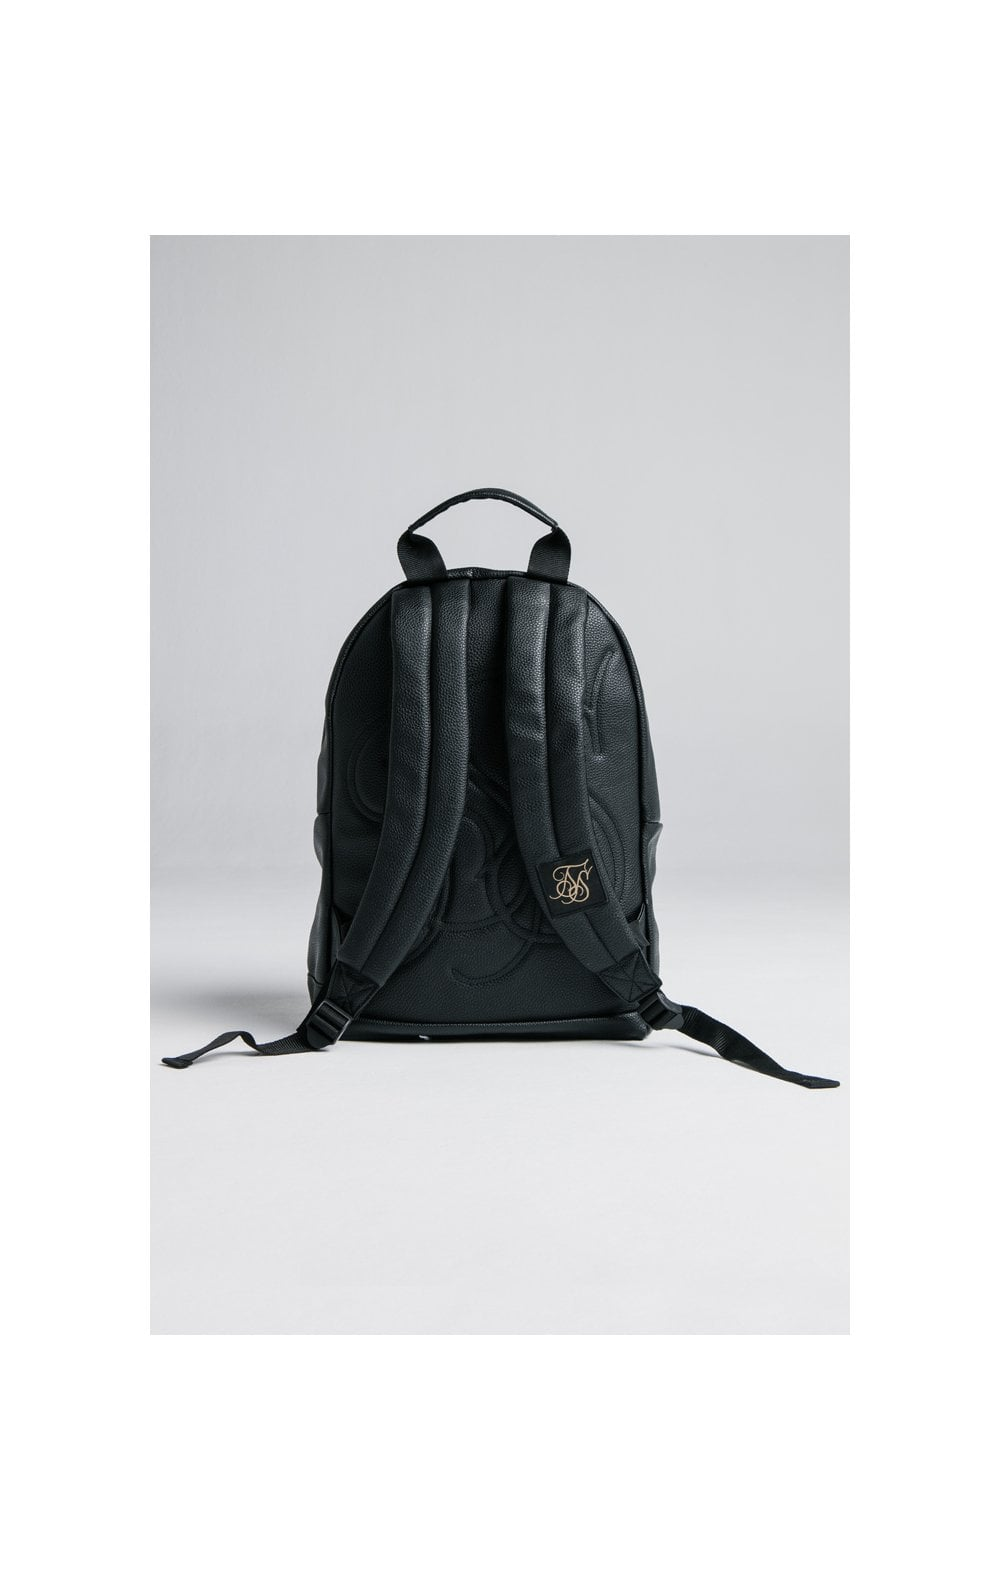 SikSilk Backpack - Black (6)